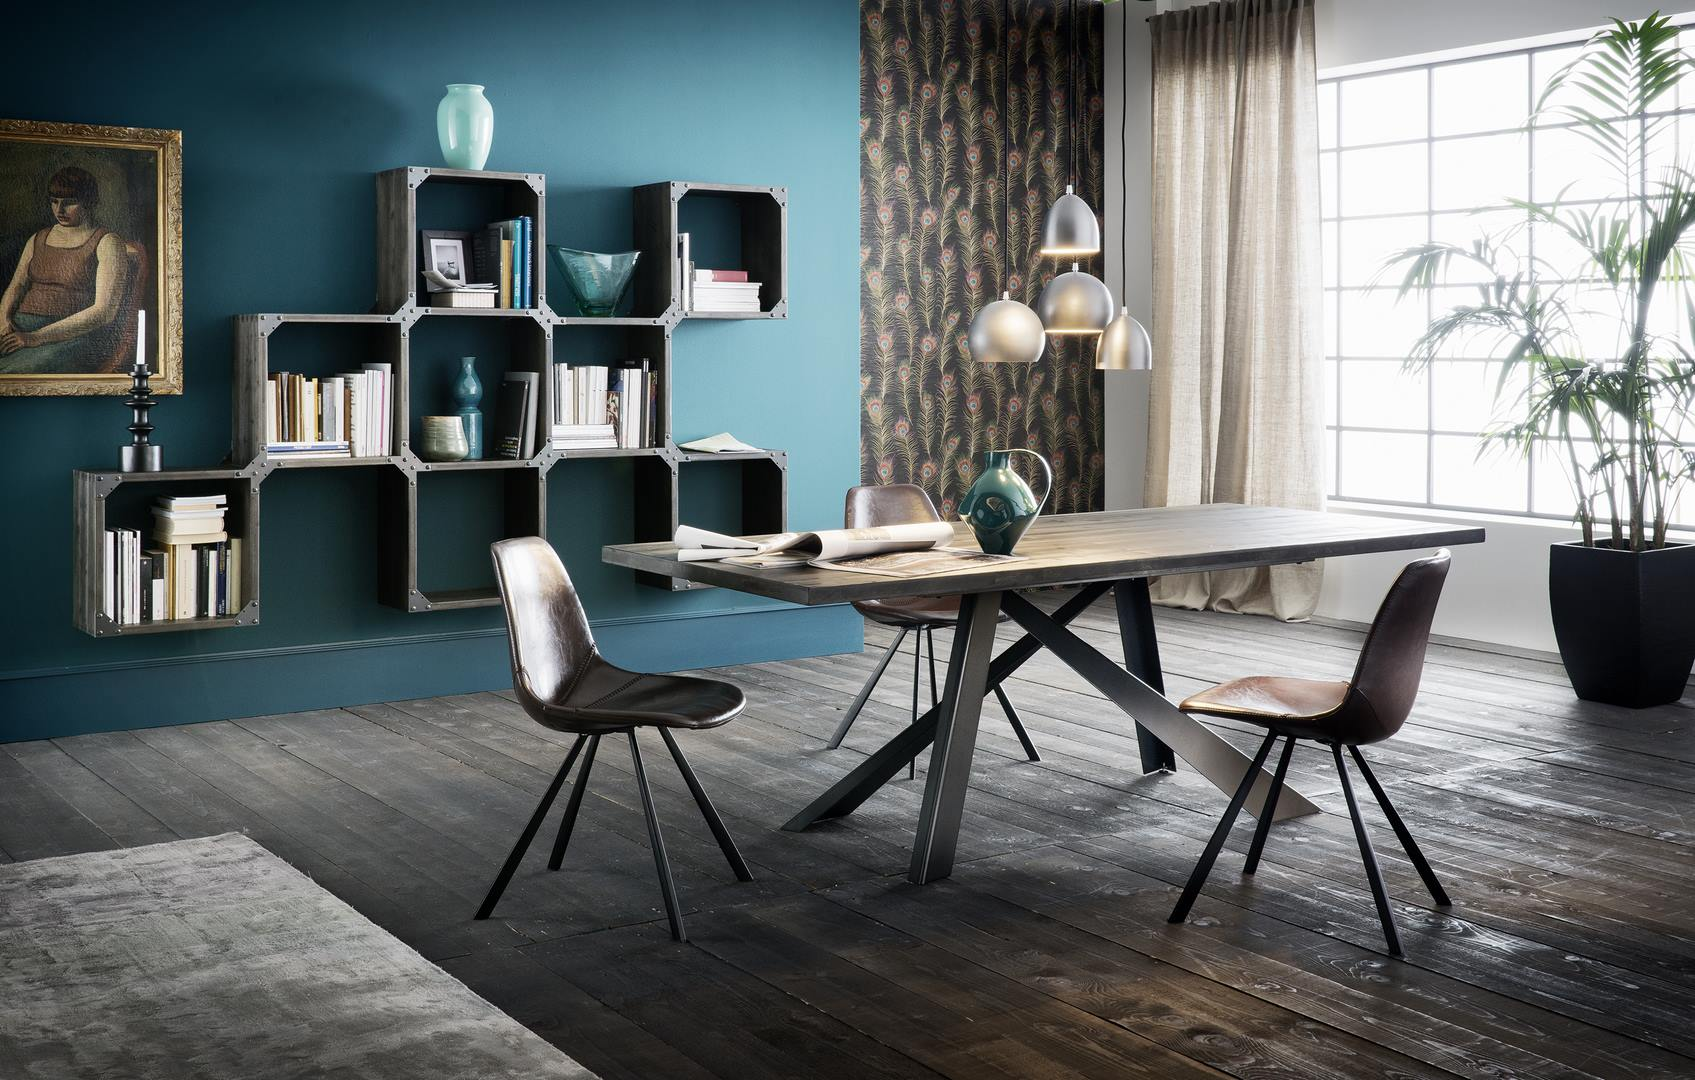 Table parigi easy finition noire pied metal noir